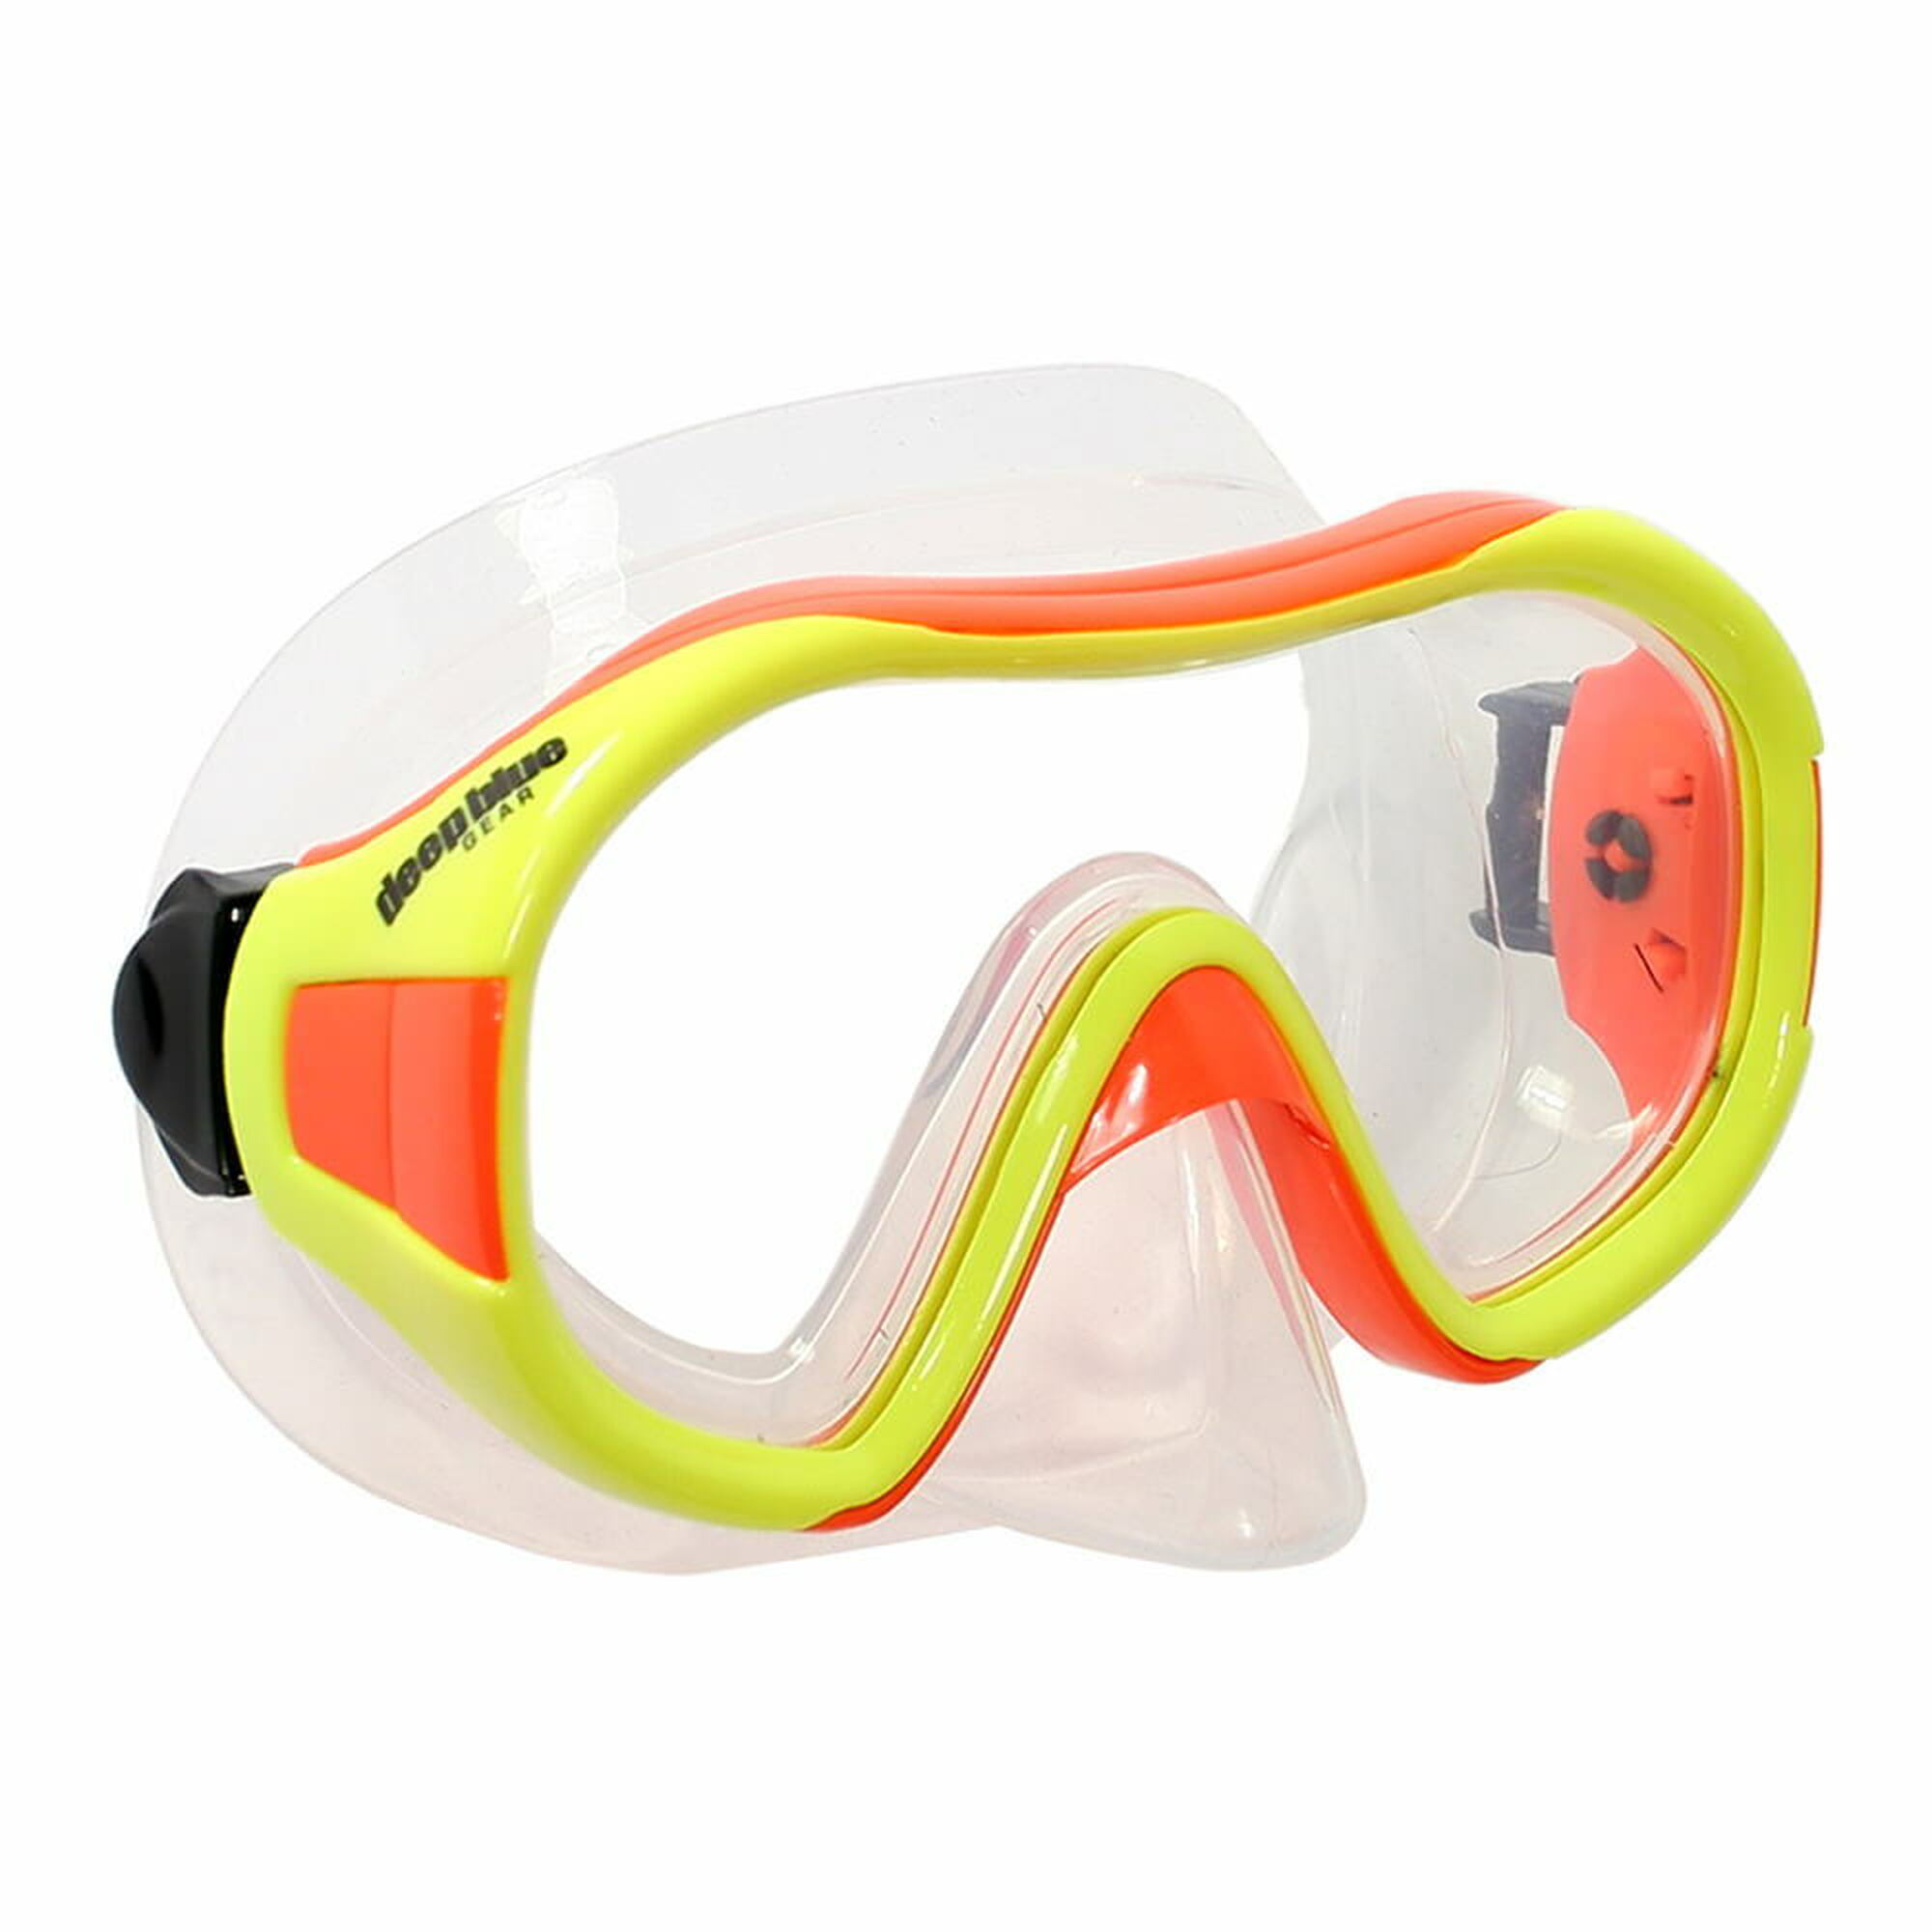 Playa - Kid's Snorkeling Mask